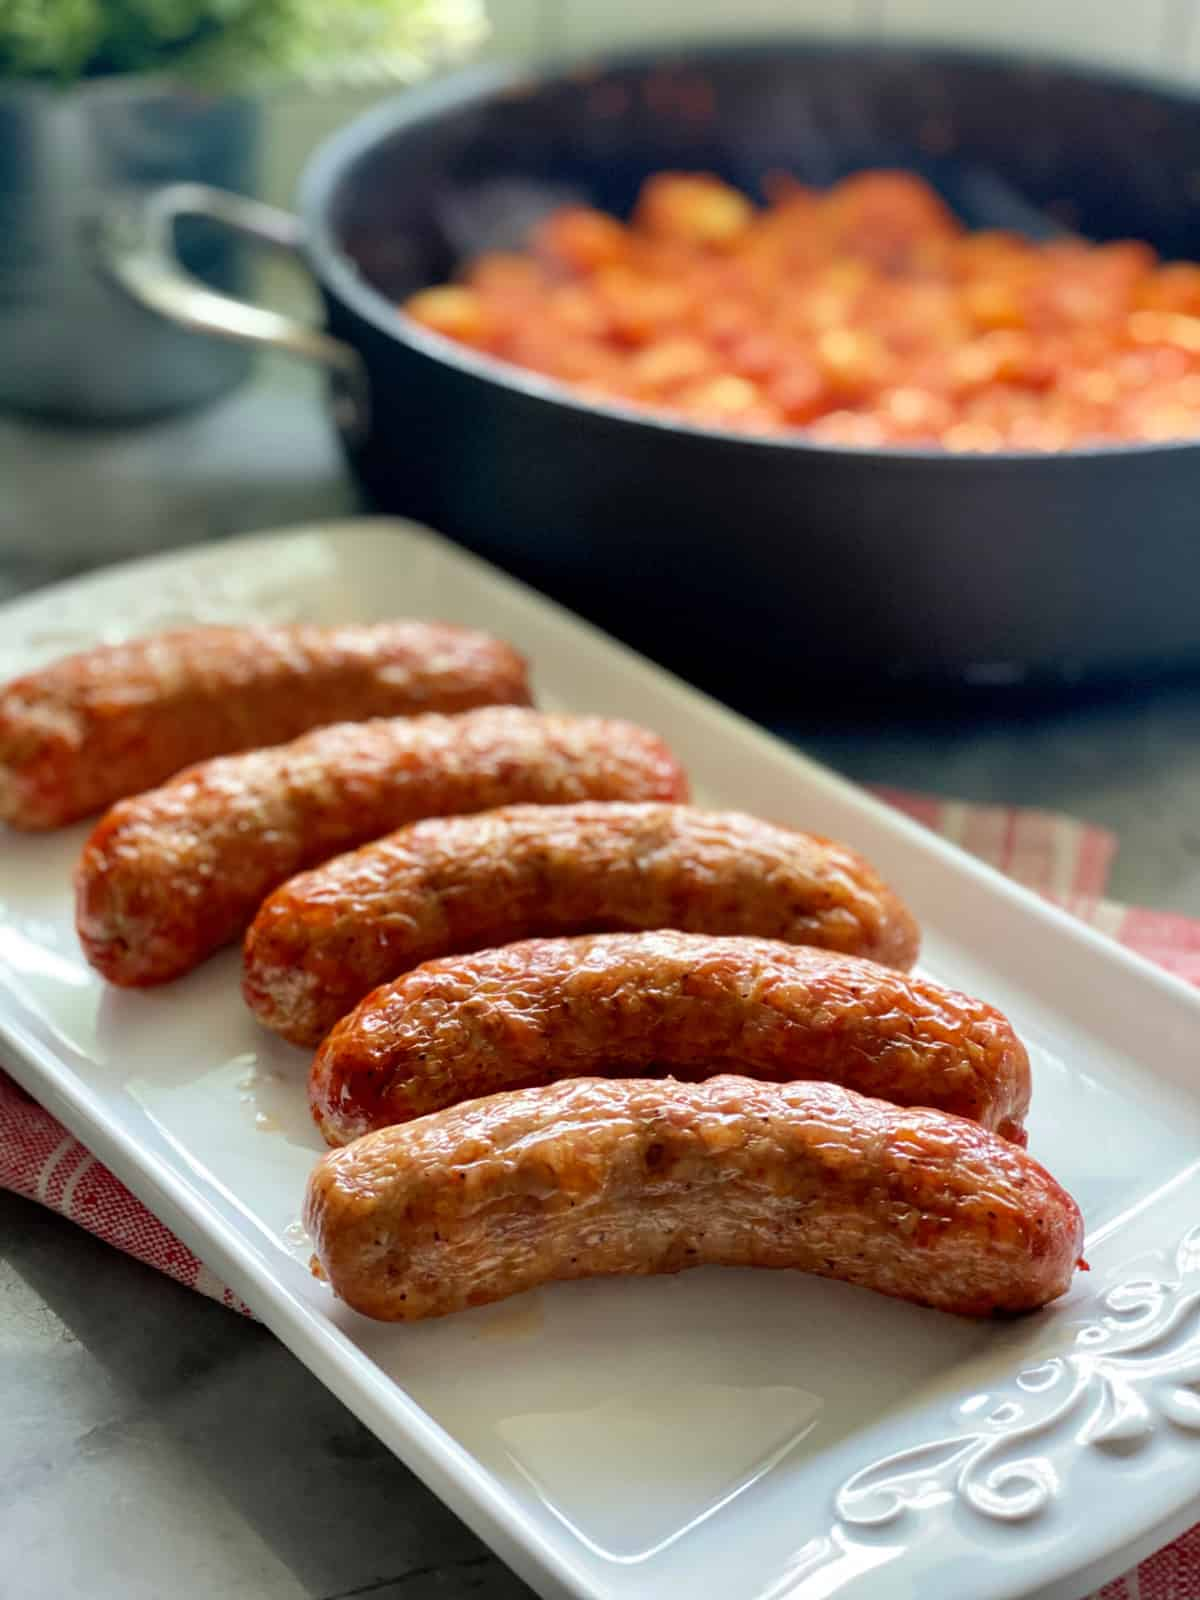 White platter filled with crispy sausage links with tomato red sauce in a skillet in background.